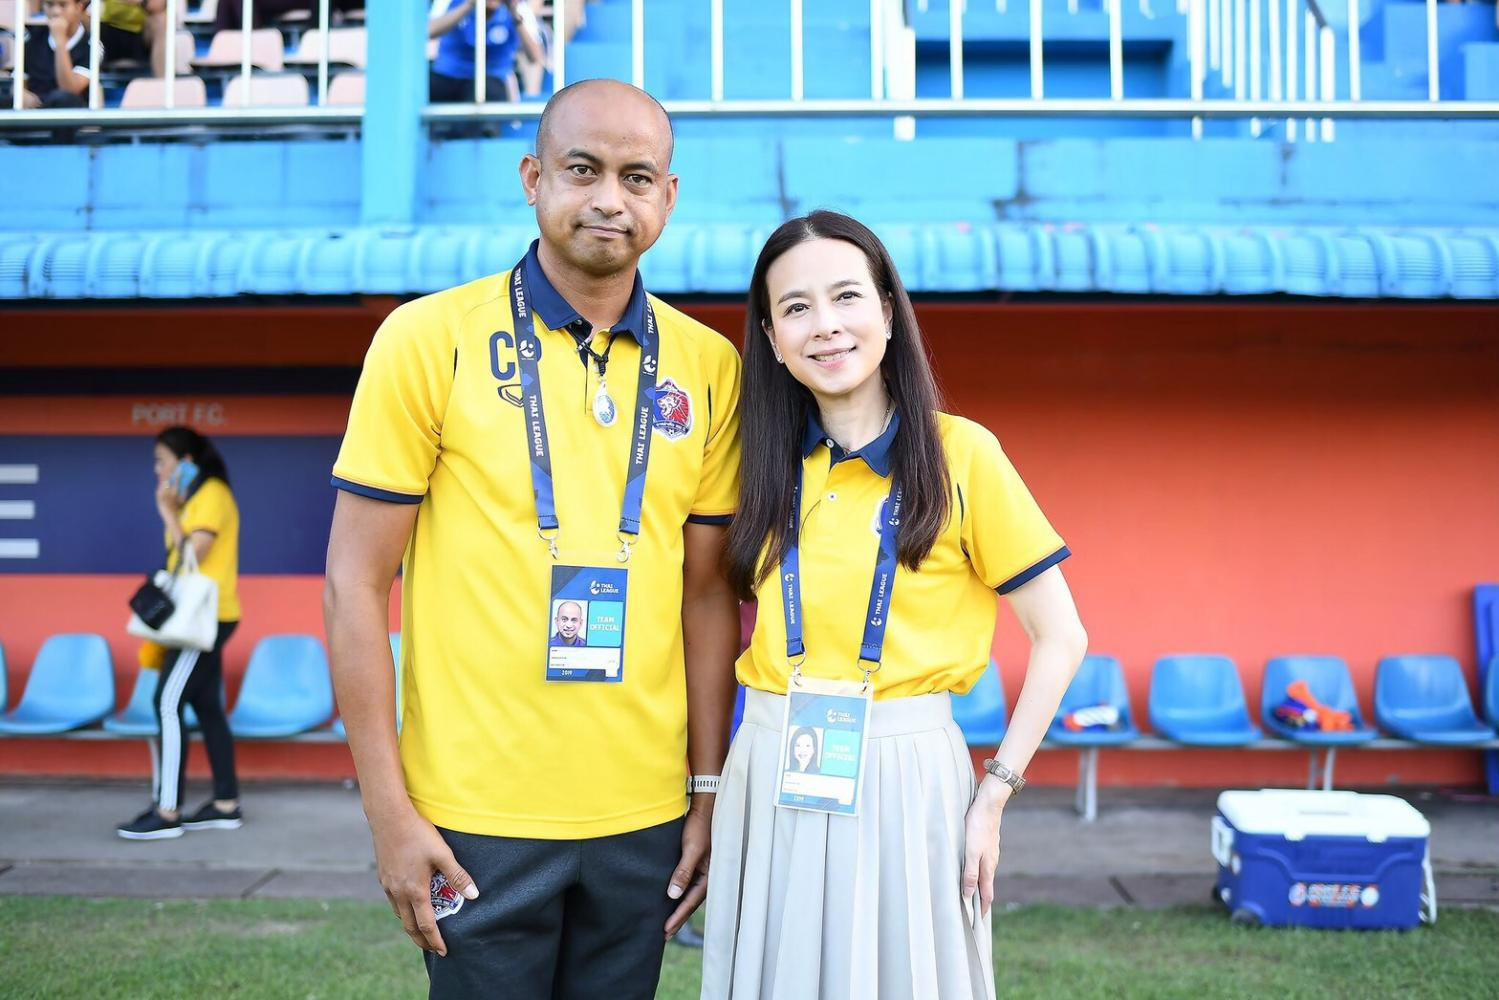 Out of job: Coach Choketawee Promrut, left, and Port FC president Nualphan Lamsam.